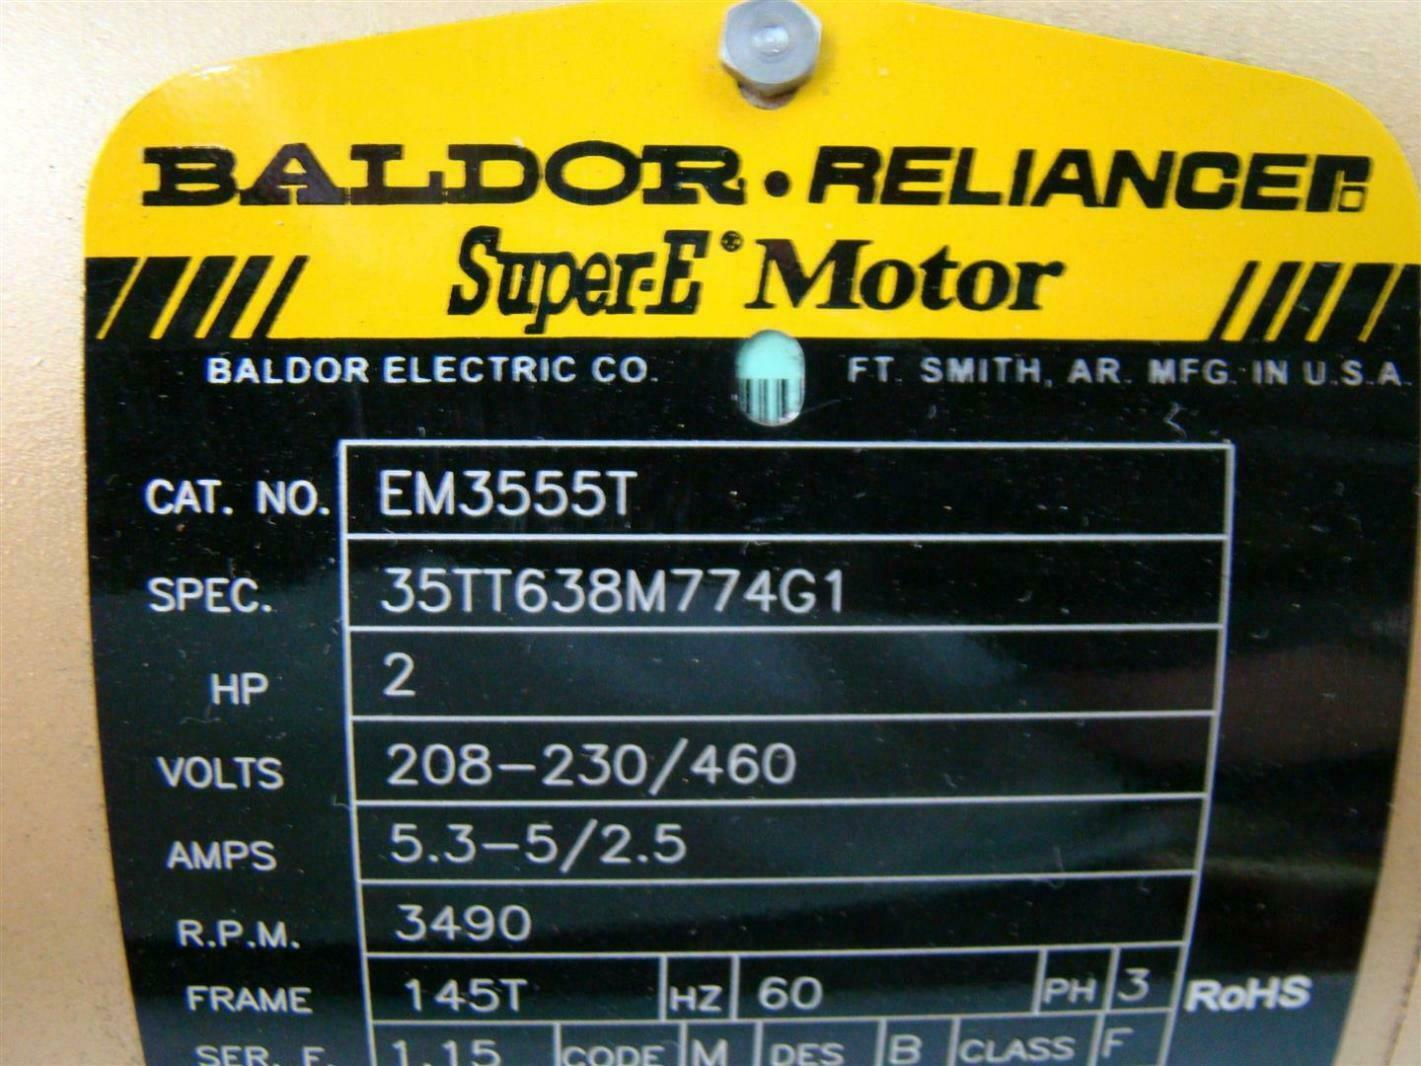 Baldor Reliance Motor Wiring Diagram 36 Images Boat Lift Diagrams Lt 310 Agh169 Super E 2hp 208 230 460v 53 5 25amps 3490rpm 3ph Em3555t